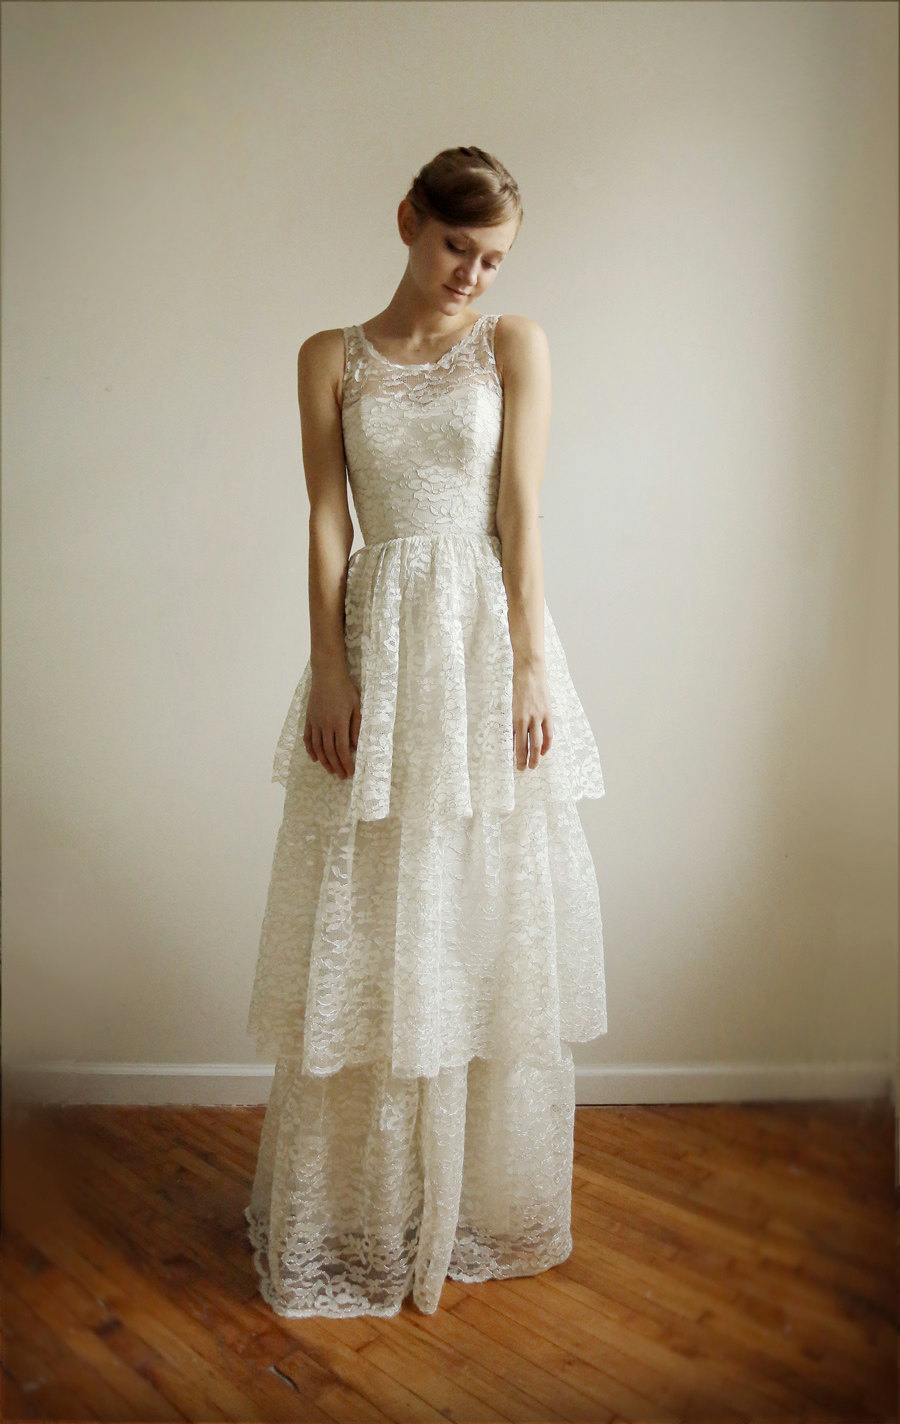 Classic-ivory-lace-wedding-dress-with-illusion-neckline.full